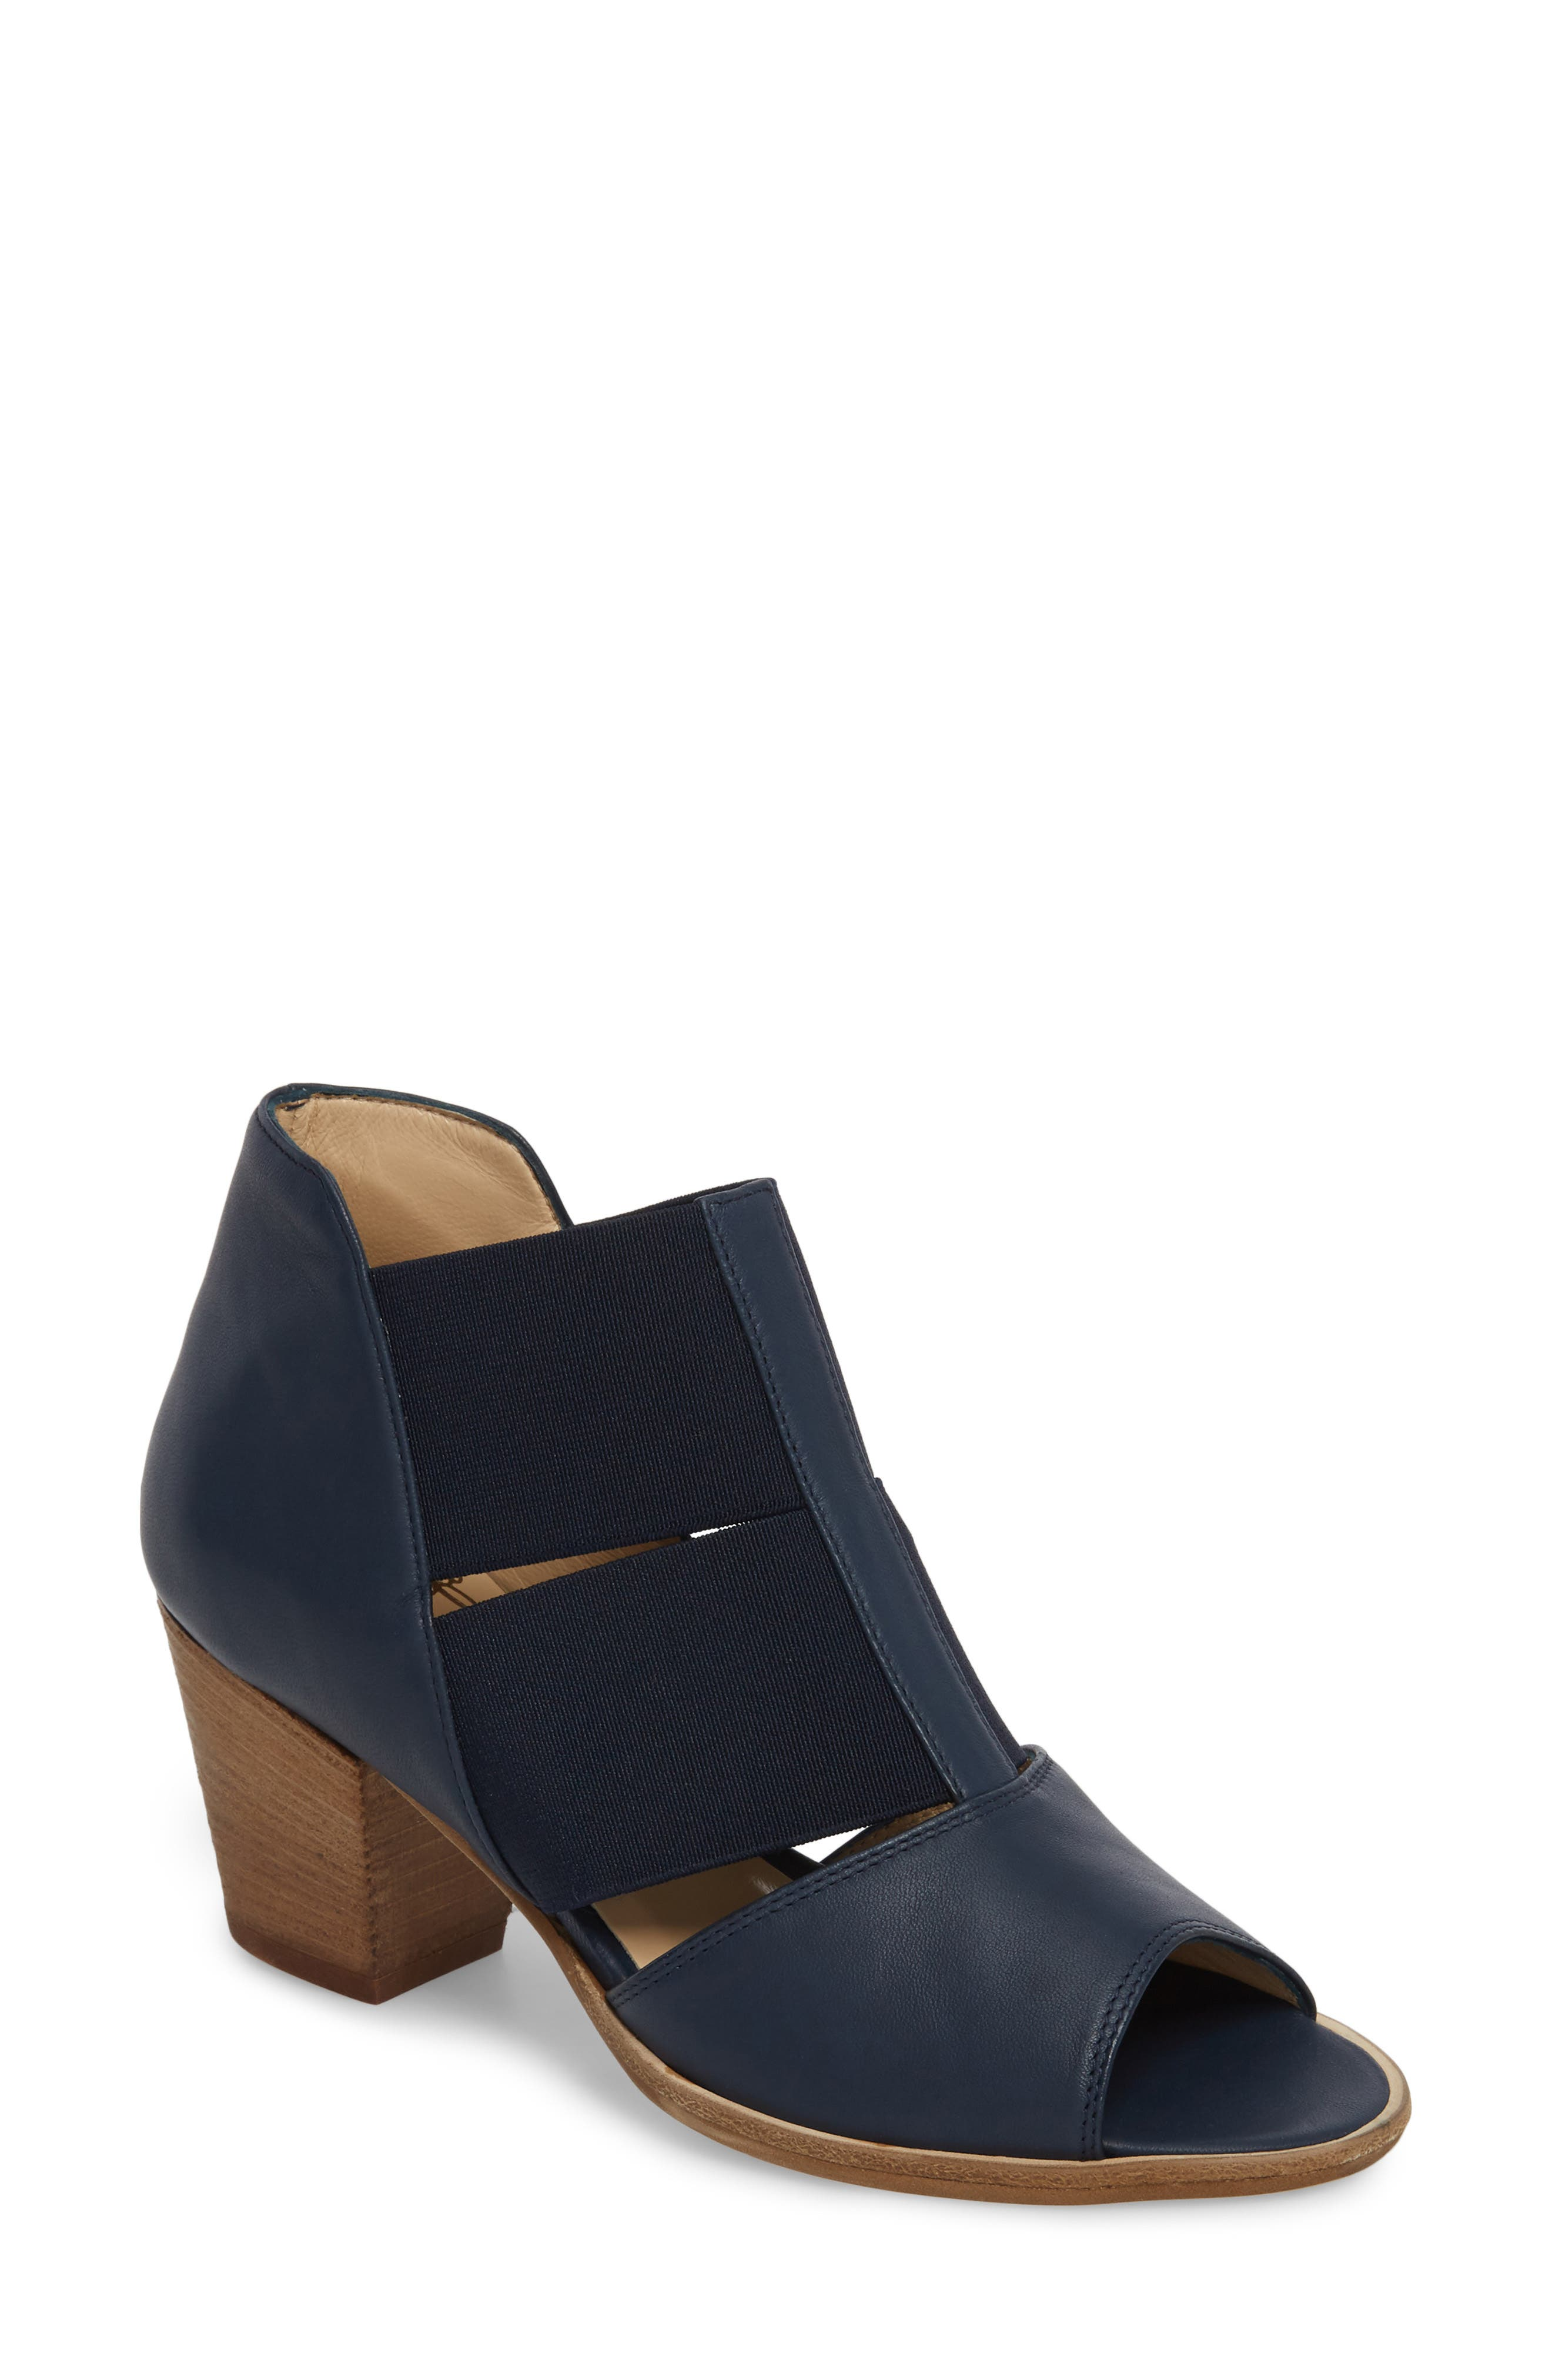 AMALFI BY RANGONI Cestello Bootie in Blue/ Green Leather